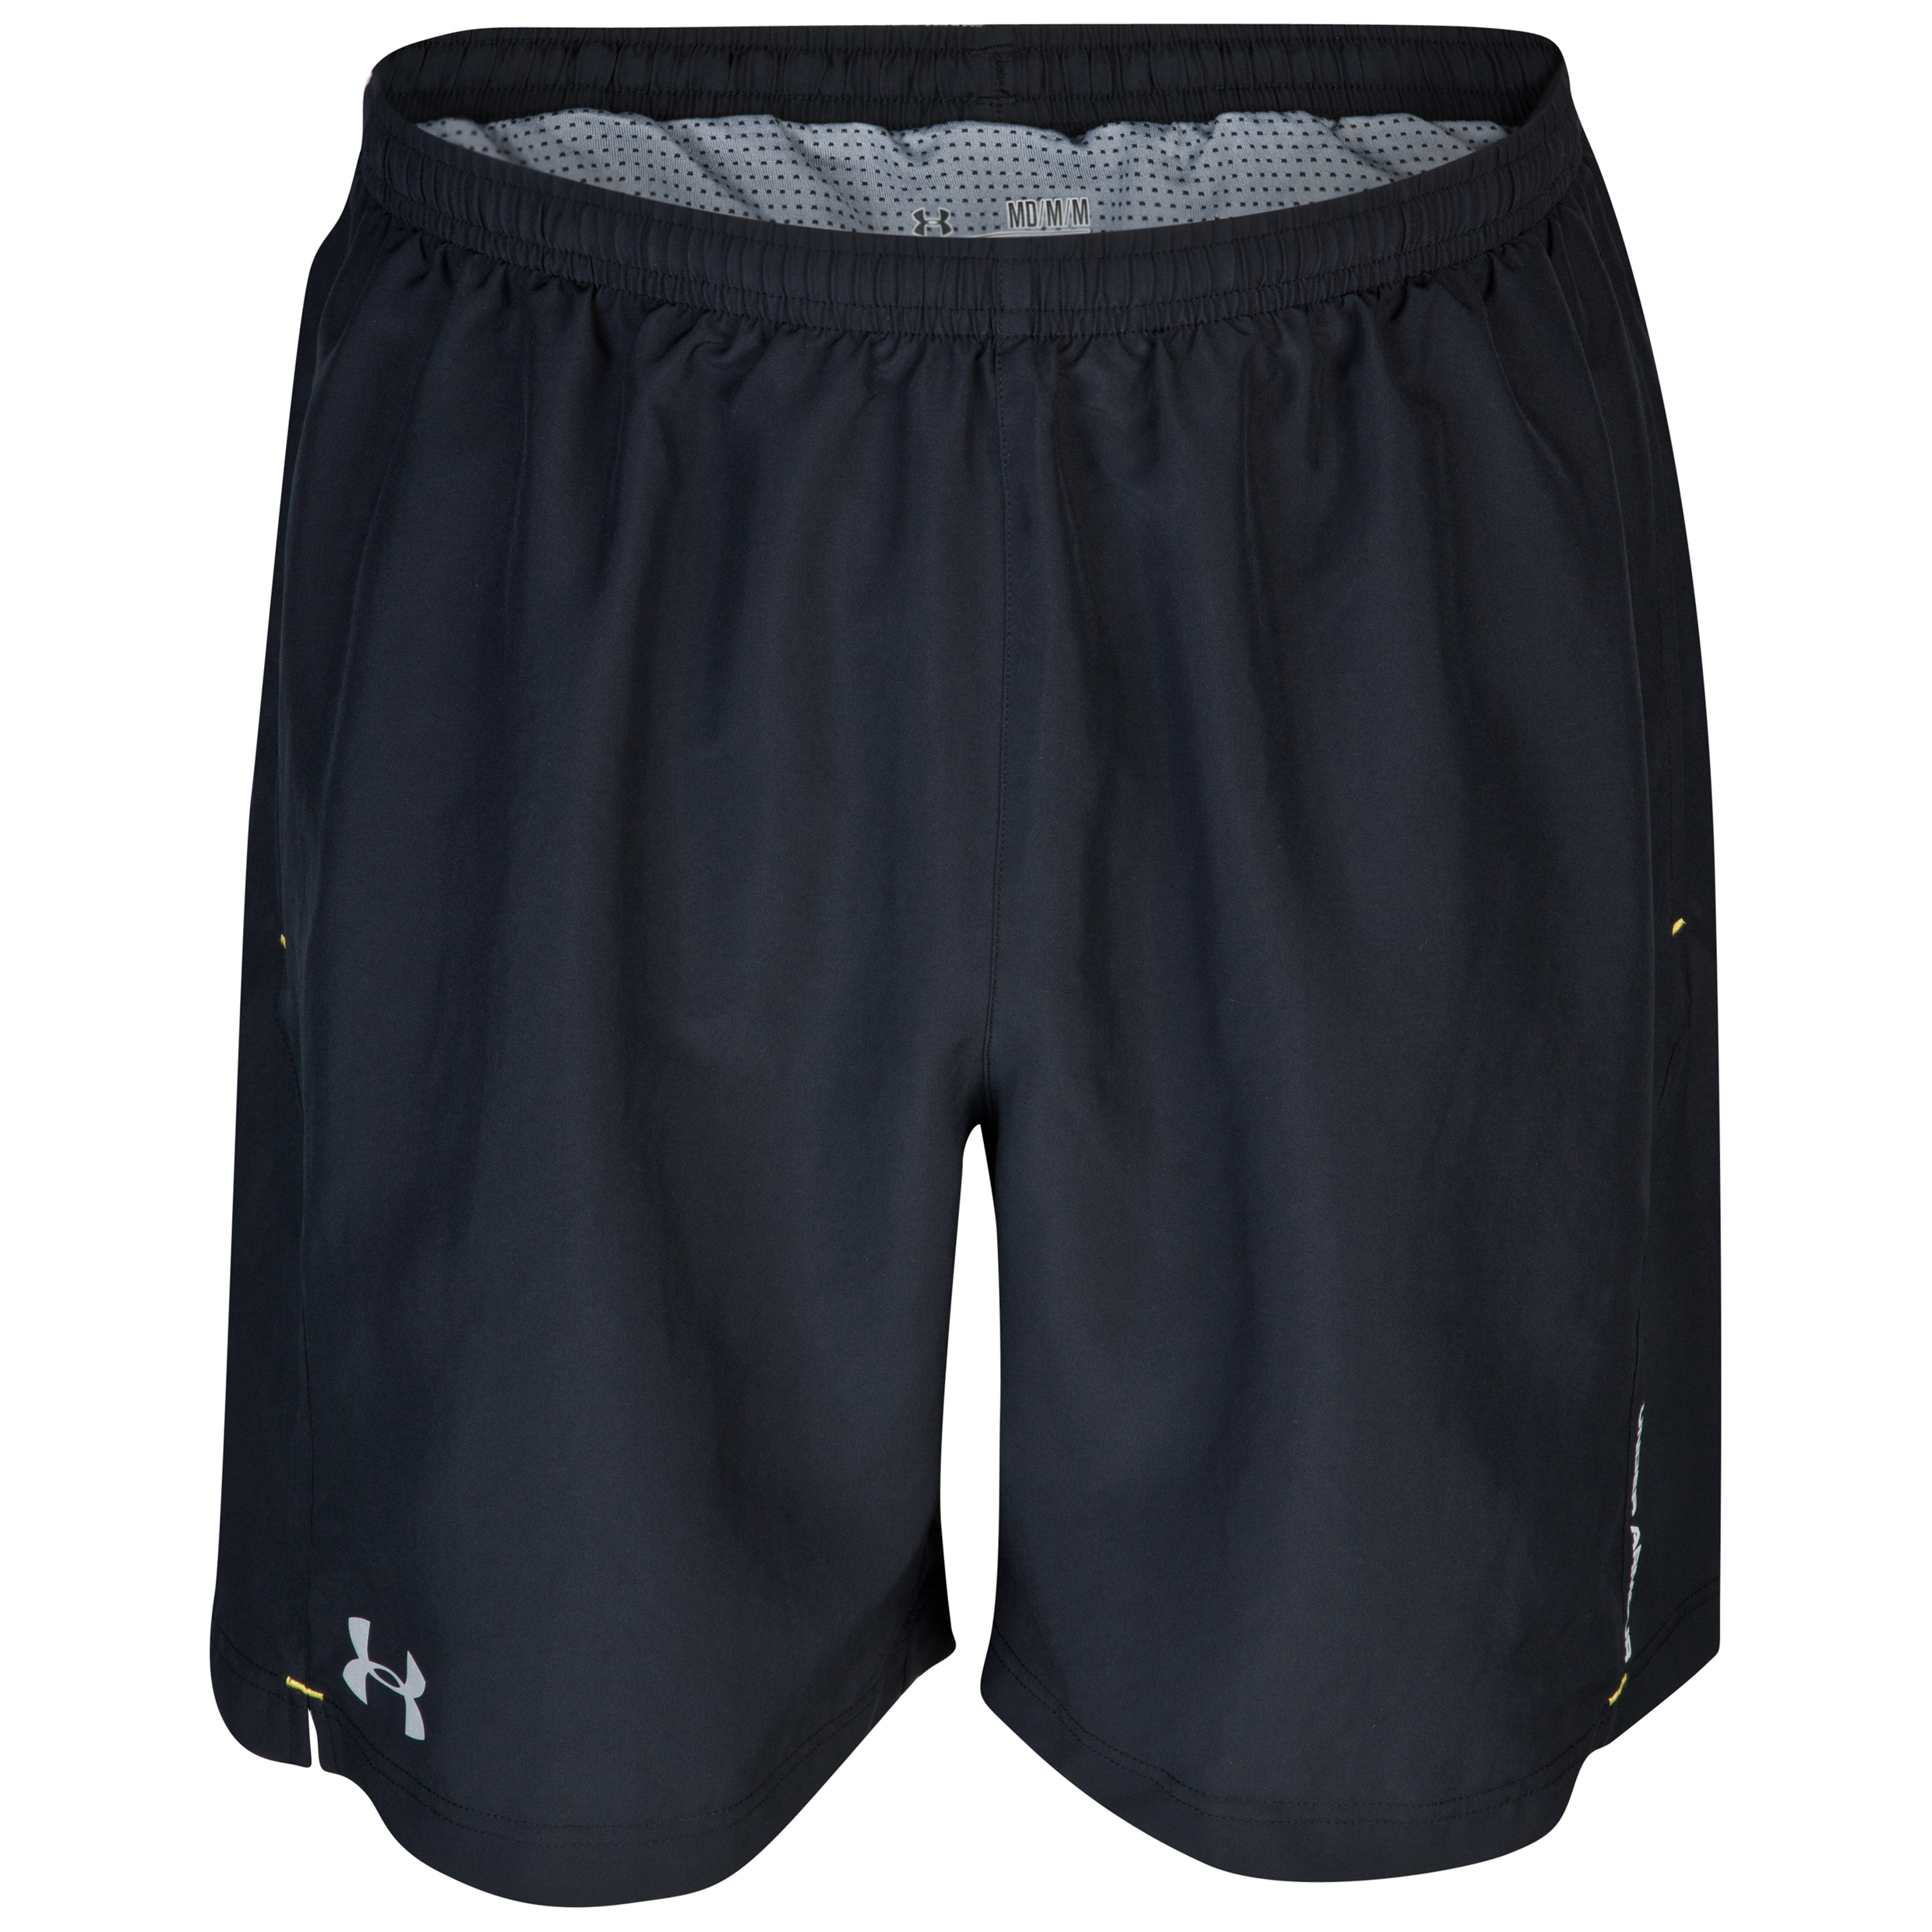 Under Armour Escape 7 Inch Solid Shorts - Black